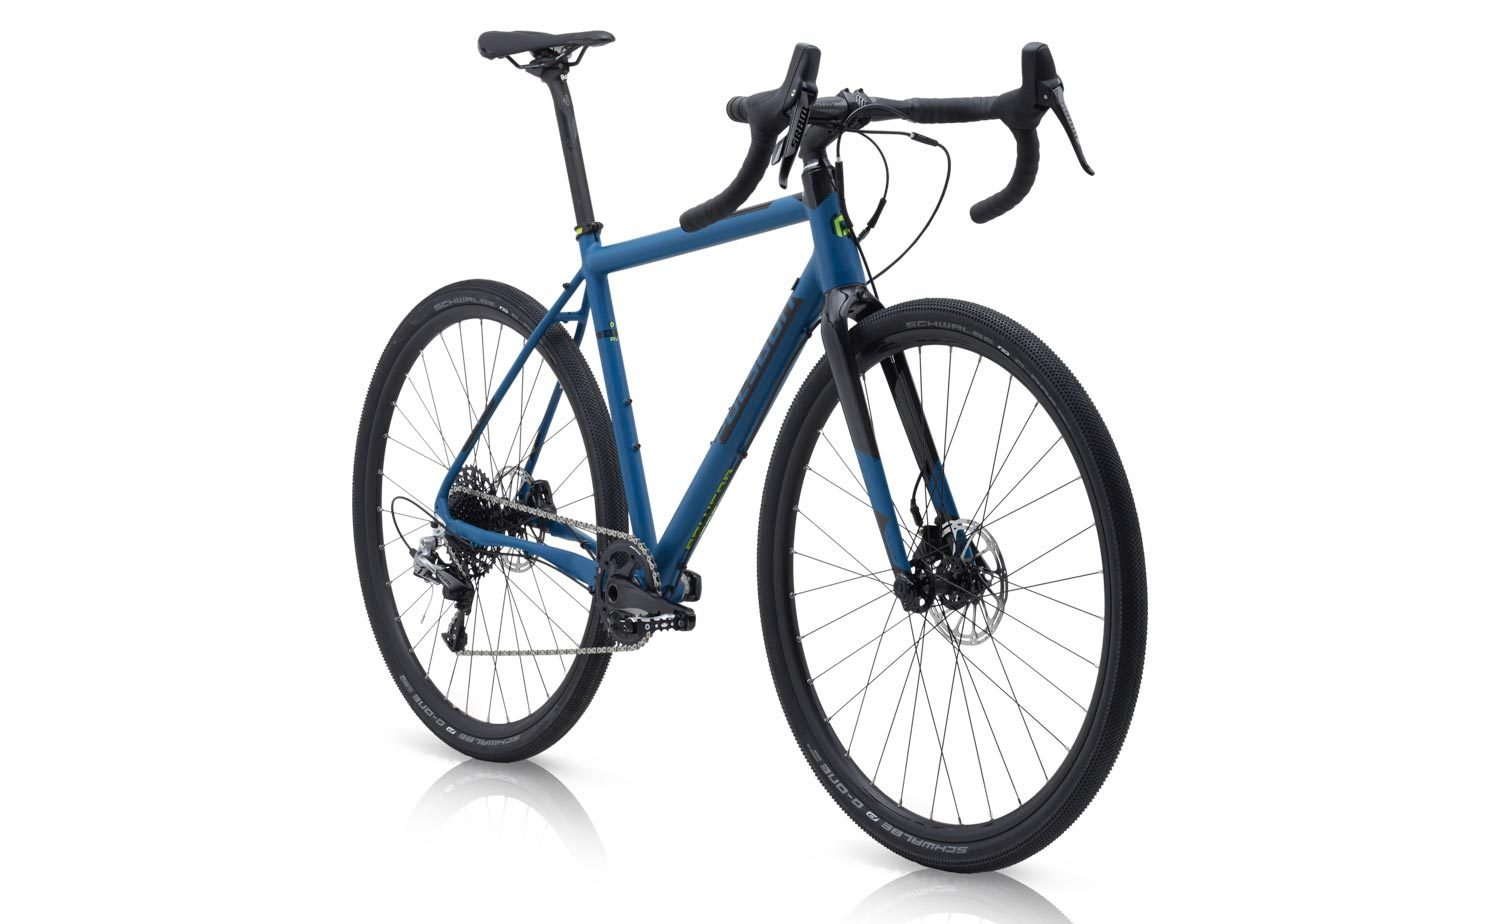 Polygon Bend RV - Gravel / Cyclocross Disc Bike | Fast Shipping